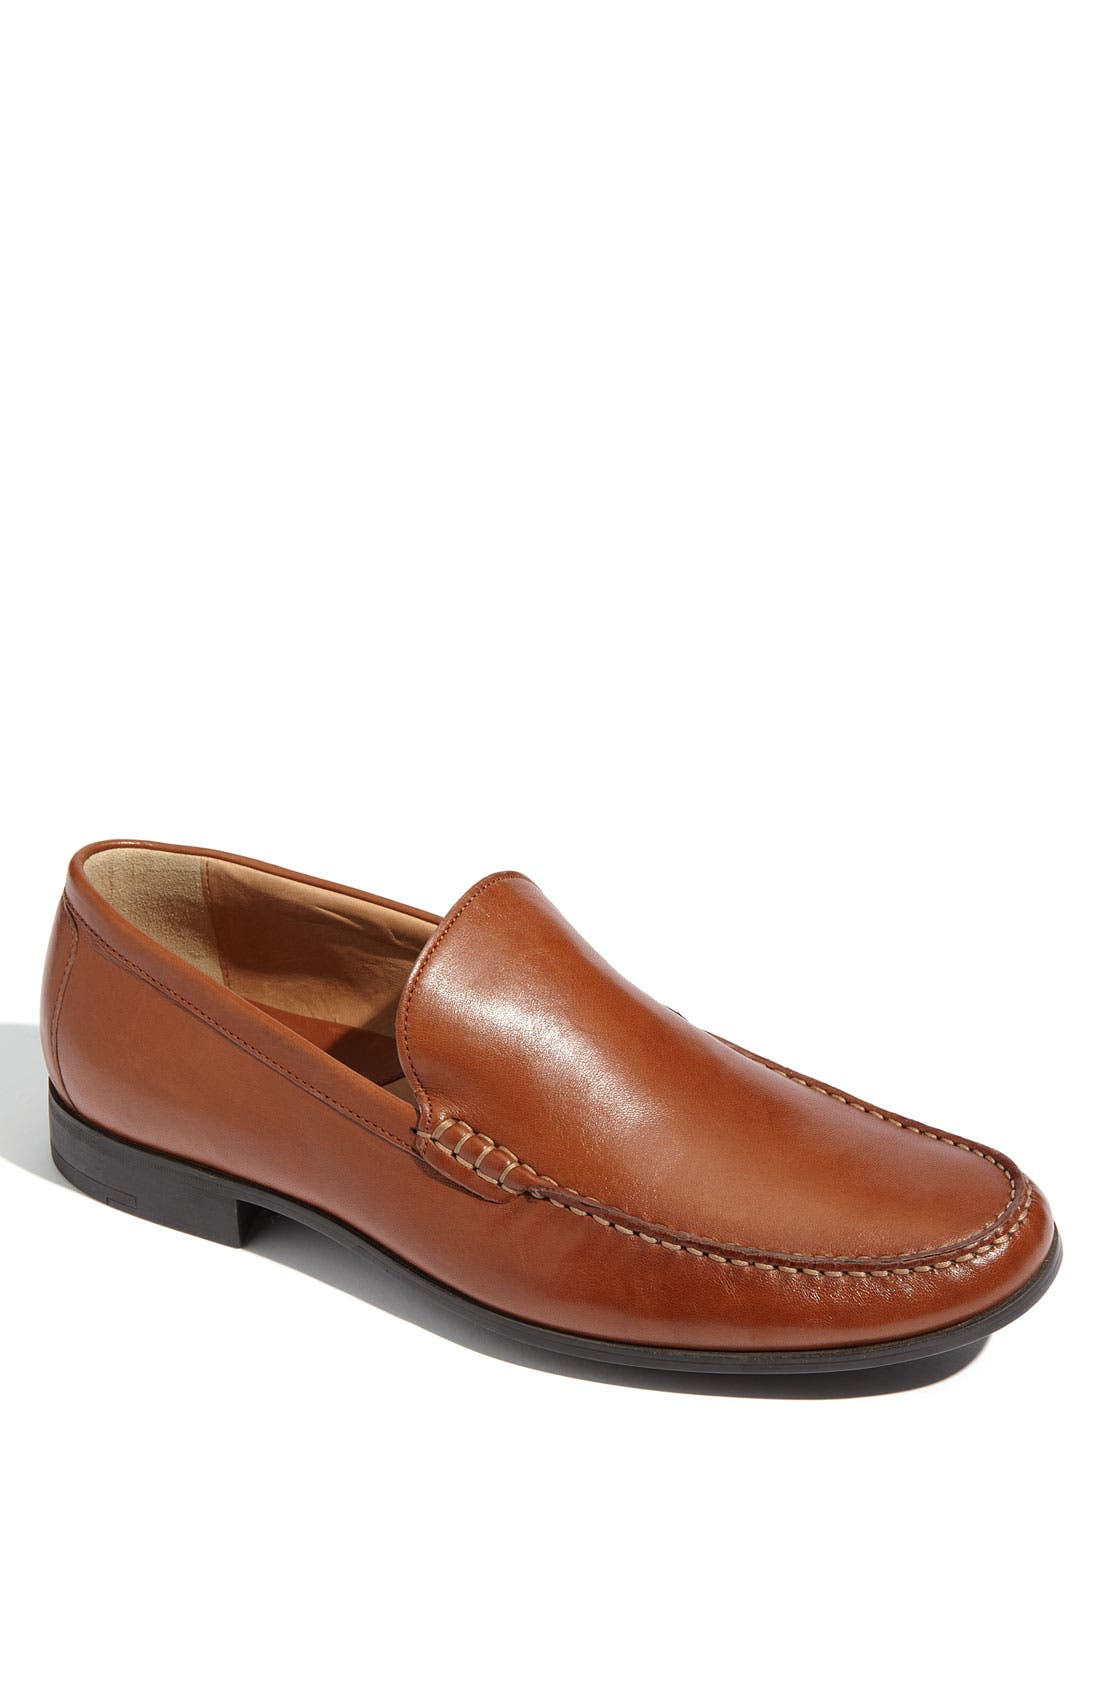 JOHNSTON & MURPHY,                             'Creswell' Venetian Slip-On,                             Main thumbnail 1, color,                             COGNAC